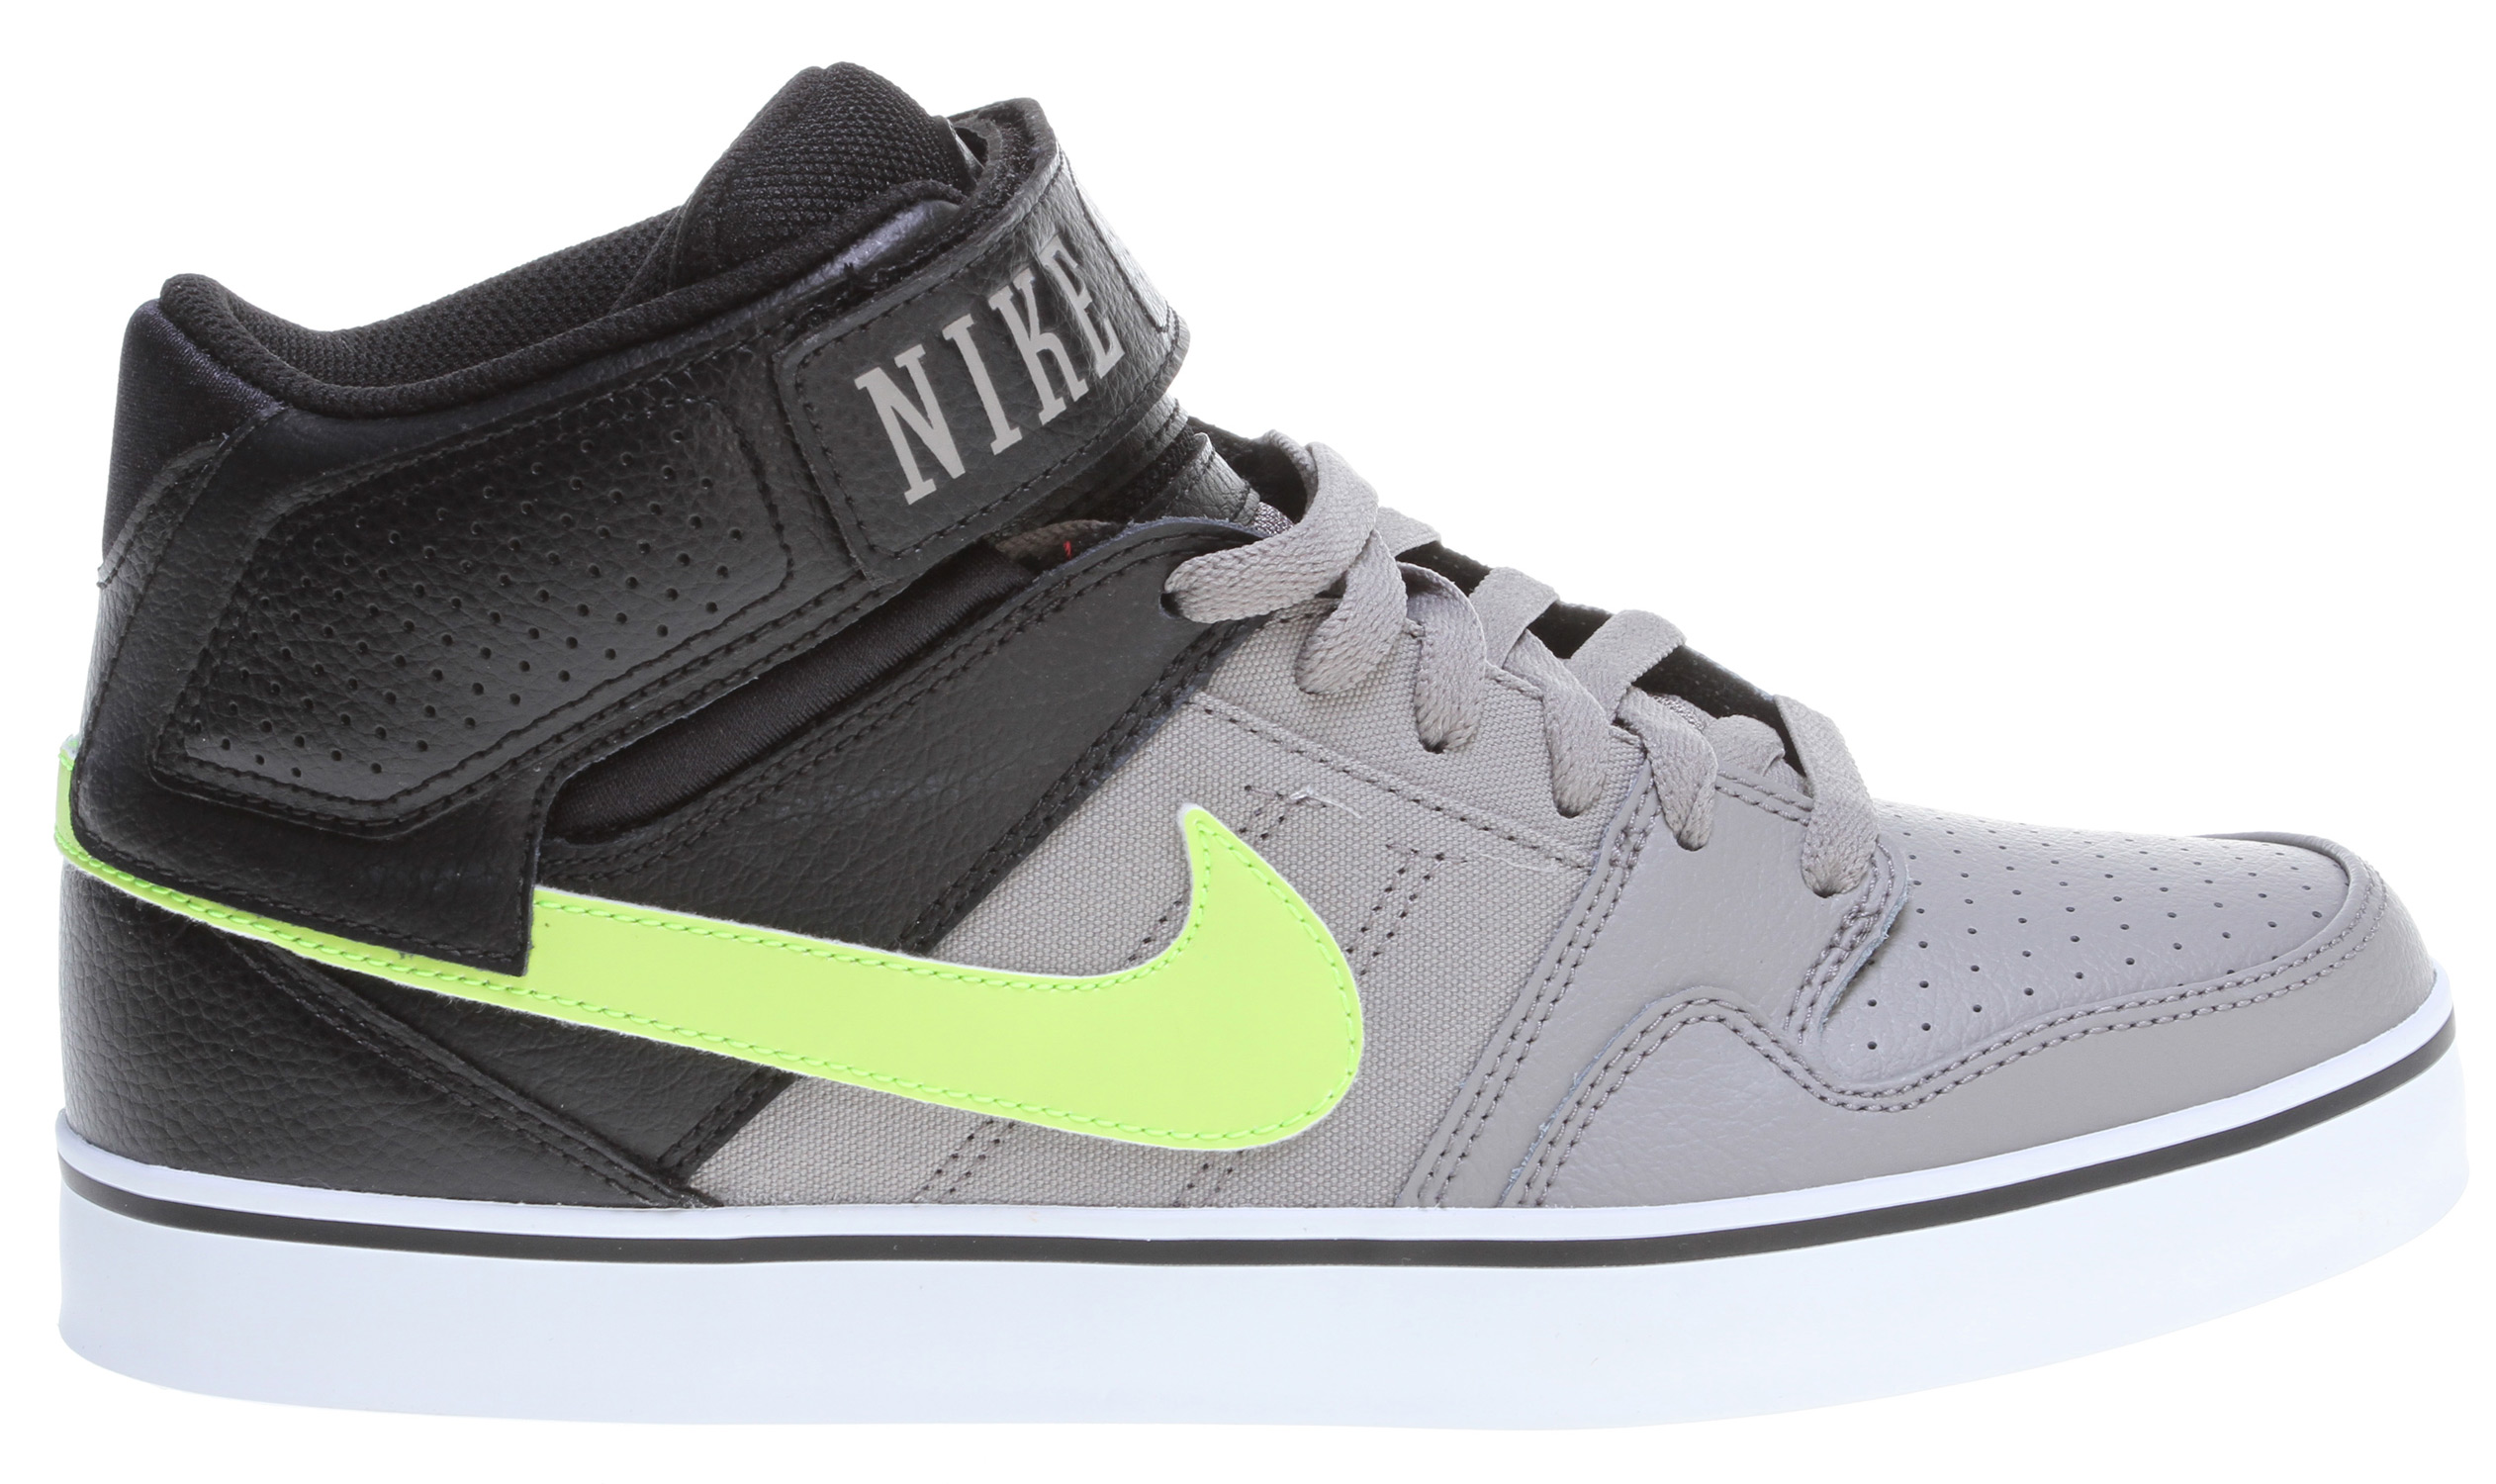 Skateboard Technical midtop with durability protection and excellent board control. Key Features of the Nike 6.0 Mogan Mid 2 SE Skate Shoes: Suede, leather and Nubuck materials. Increased layers for durability. Protective strap design with increased collar height for comfort and fit. Combination drop-in midsole/sockliner designed for maximum comfort and responsiveness. Rubber outsole for durability. Designed for flexibility and board feel. - $78.00